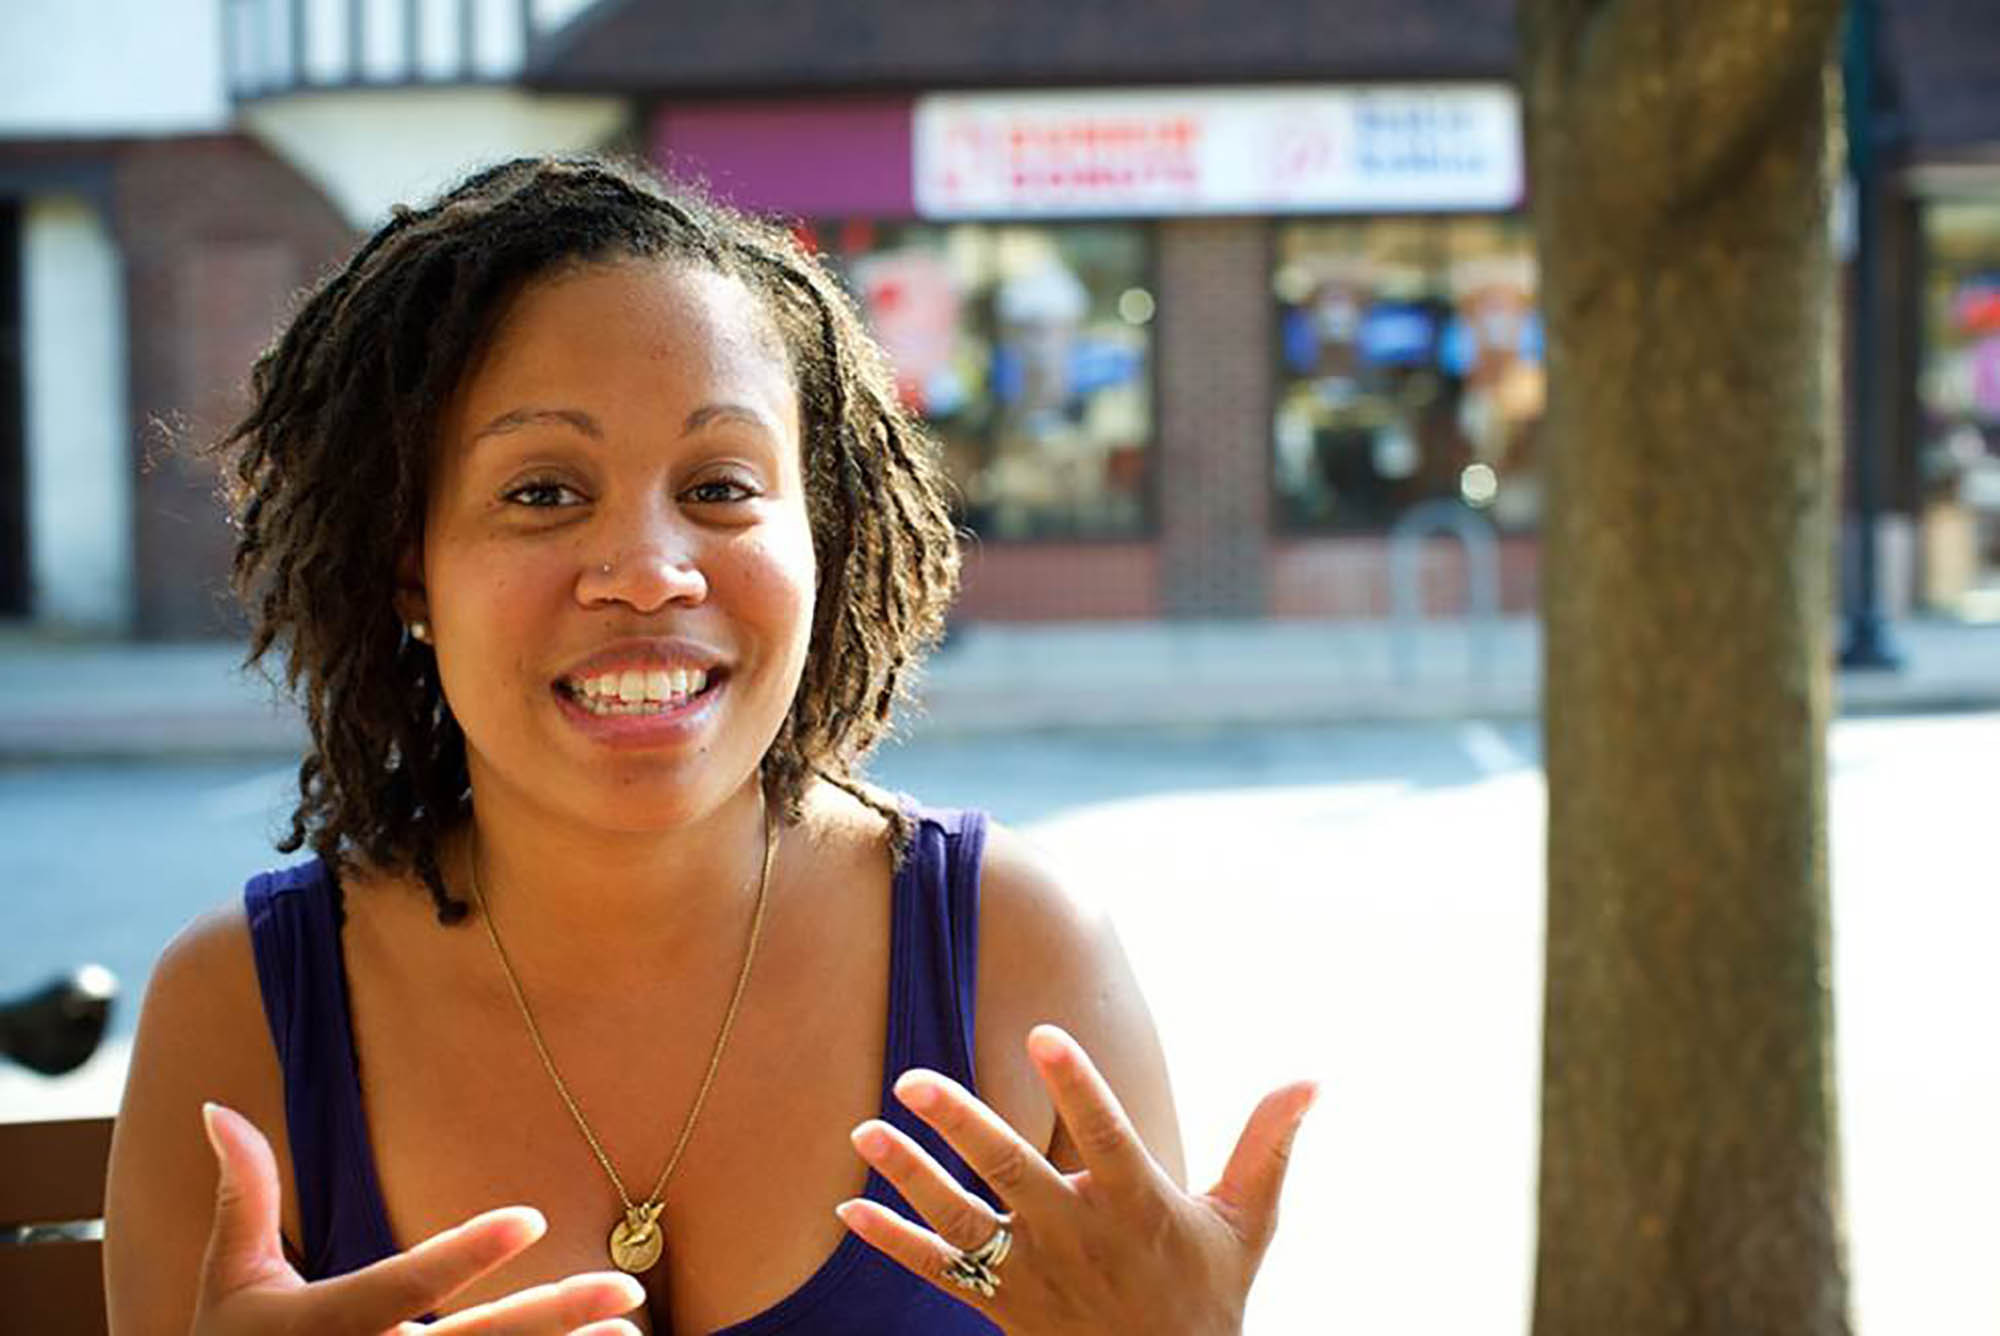 """Local writer Satya Nelms, one of the organizers of """"One Book, One Swarthmore,"""" will lead a poetry workshop for teens and tweens on Monday, June 10, at the Council Room of Swarthmore Borough Hall.  Photo by Andy Shelter."""